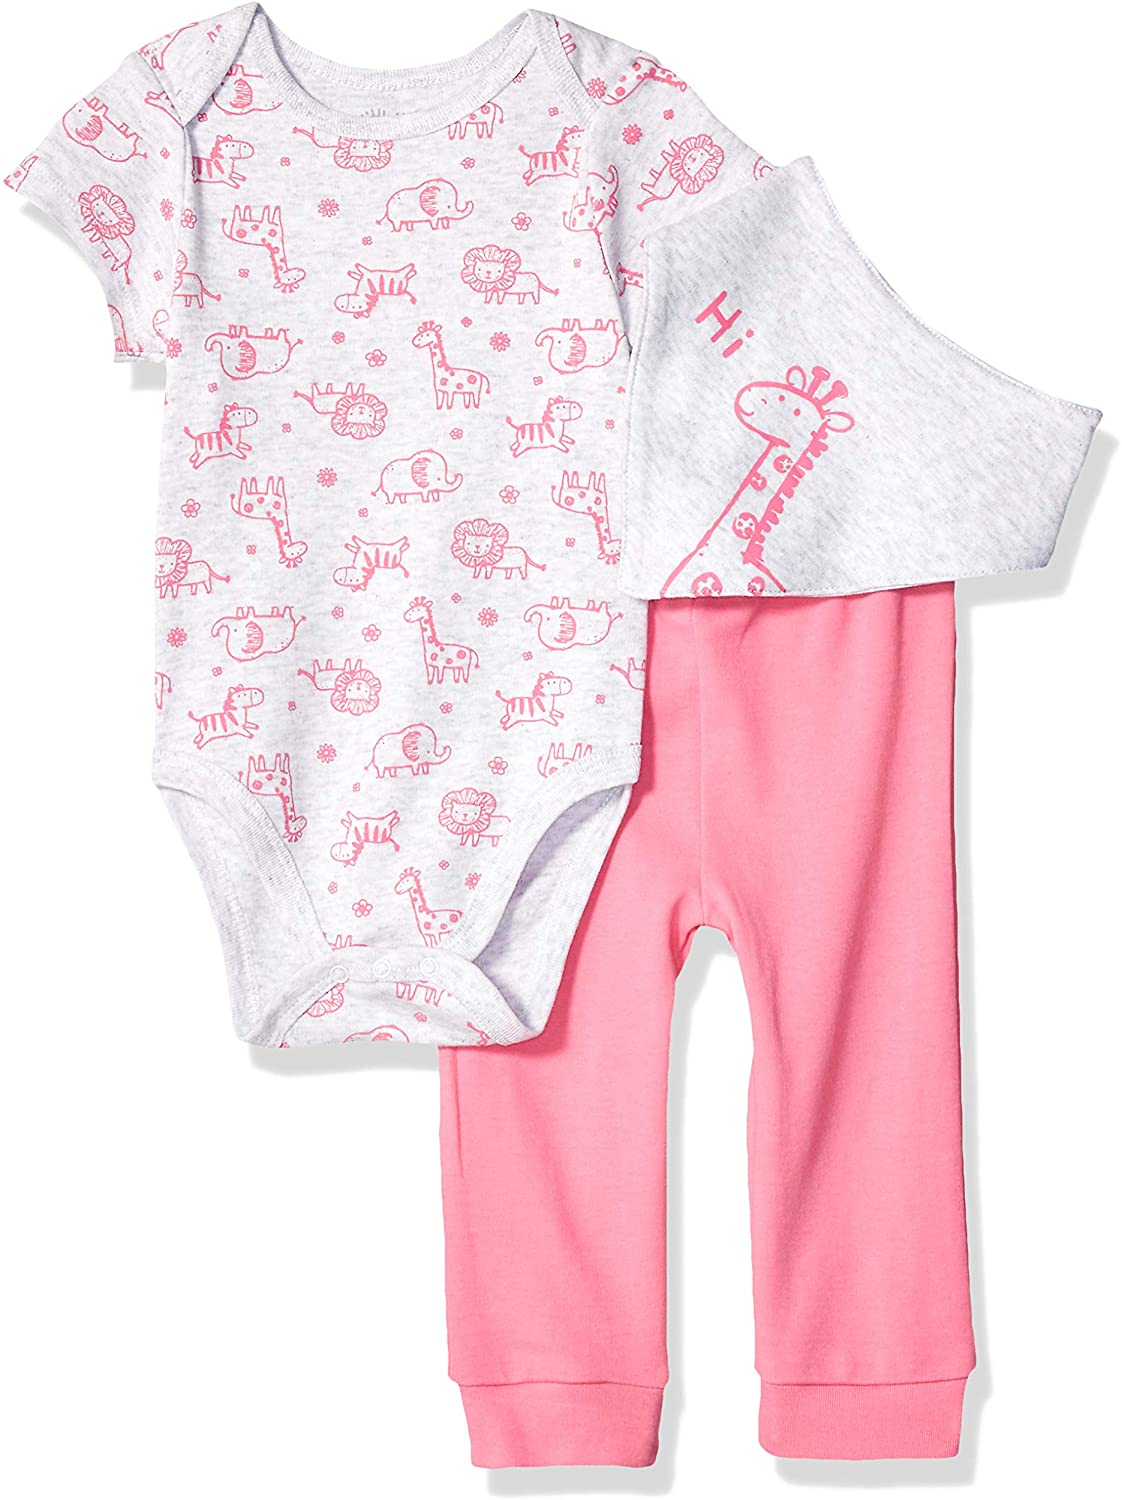 Little Me Baby Girl's 3 Piece Bandana Bib Pant Set Pants